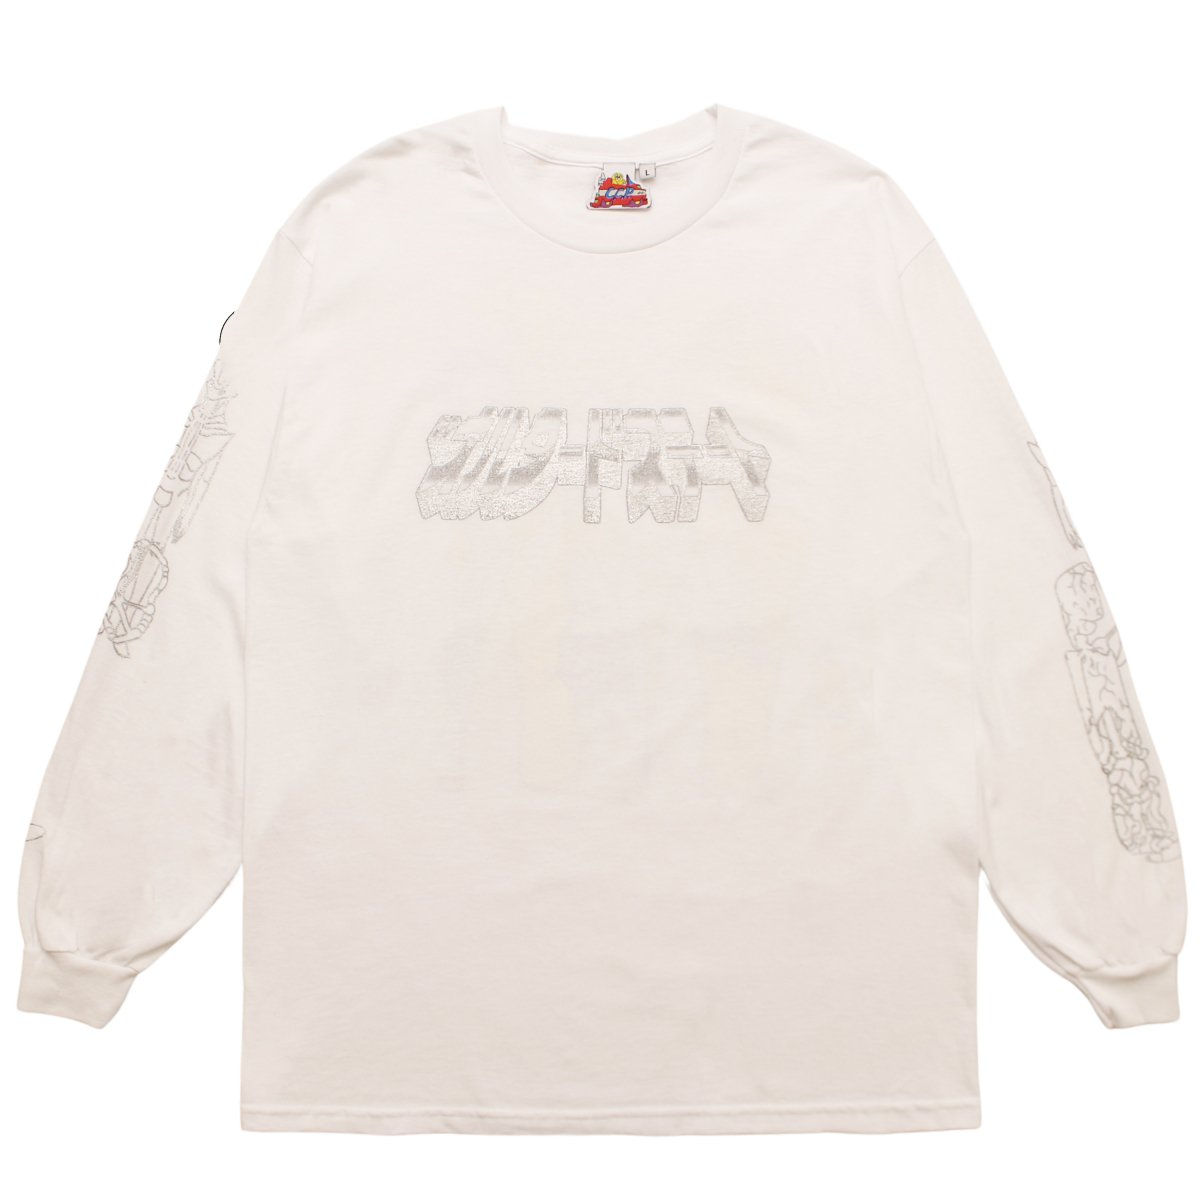 "Ken Russell ""ALTERED STATE"" Long Sleeve【WHITE】"